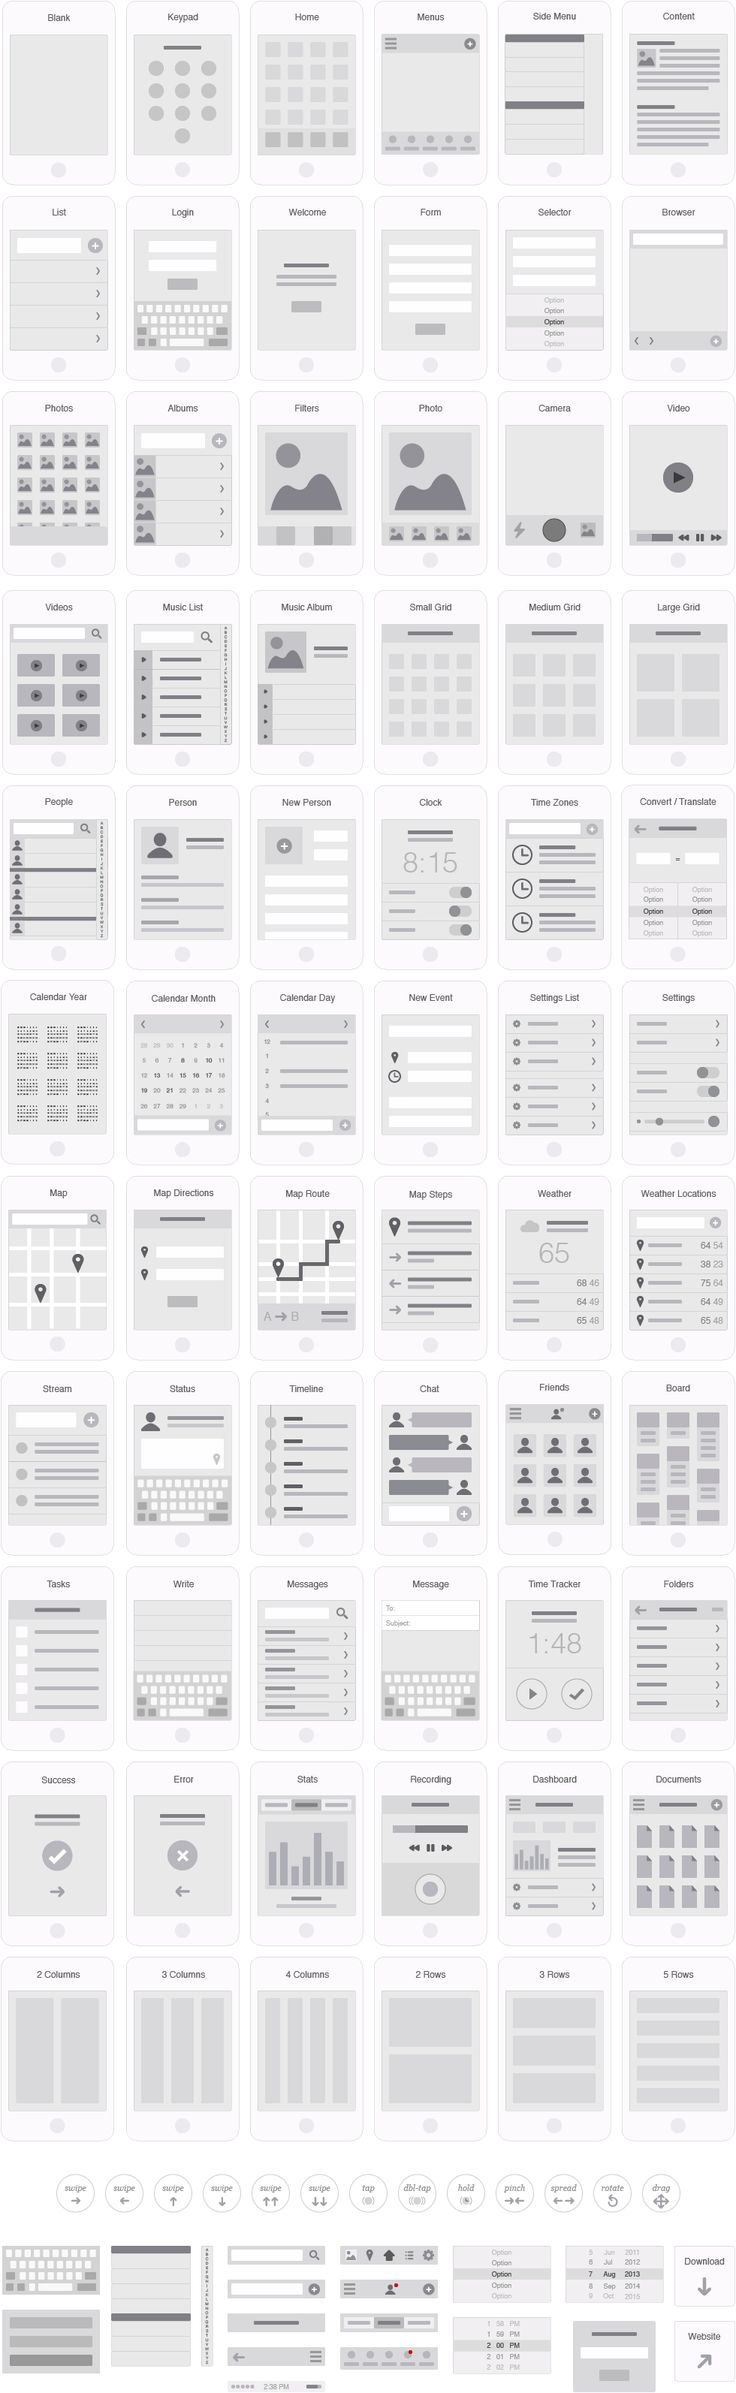 Mobile App Visual Flowchart Illustrator Template – UX Kits uxkits.com